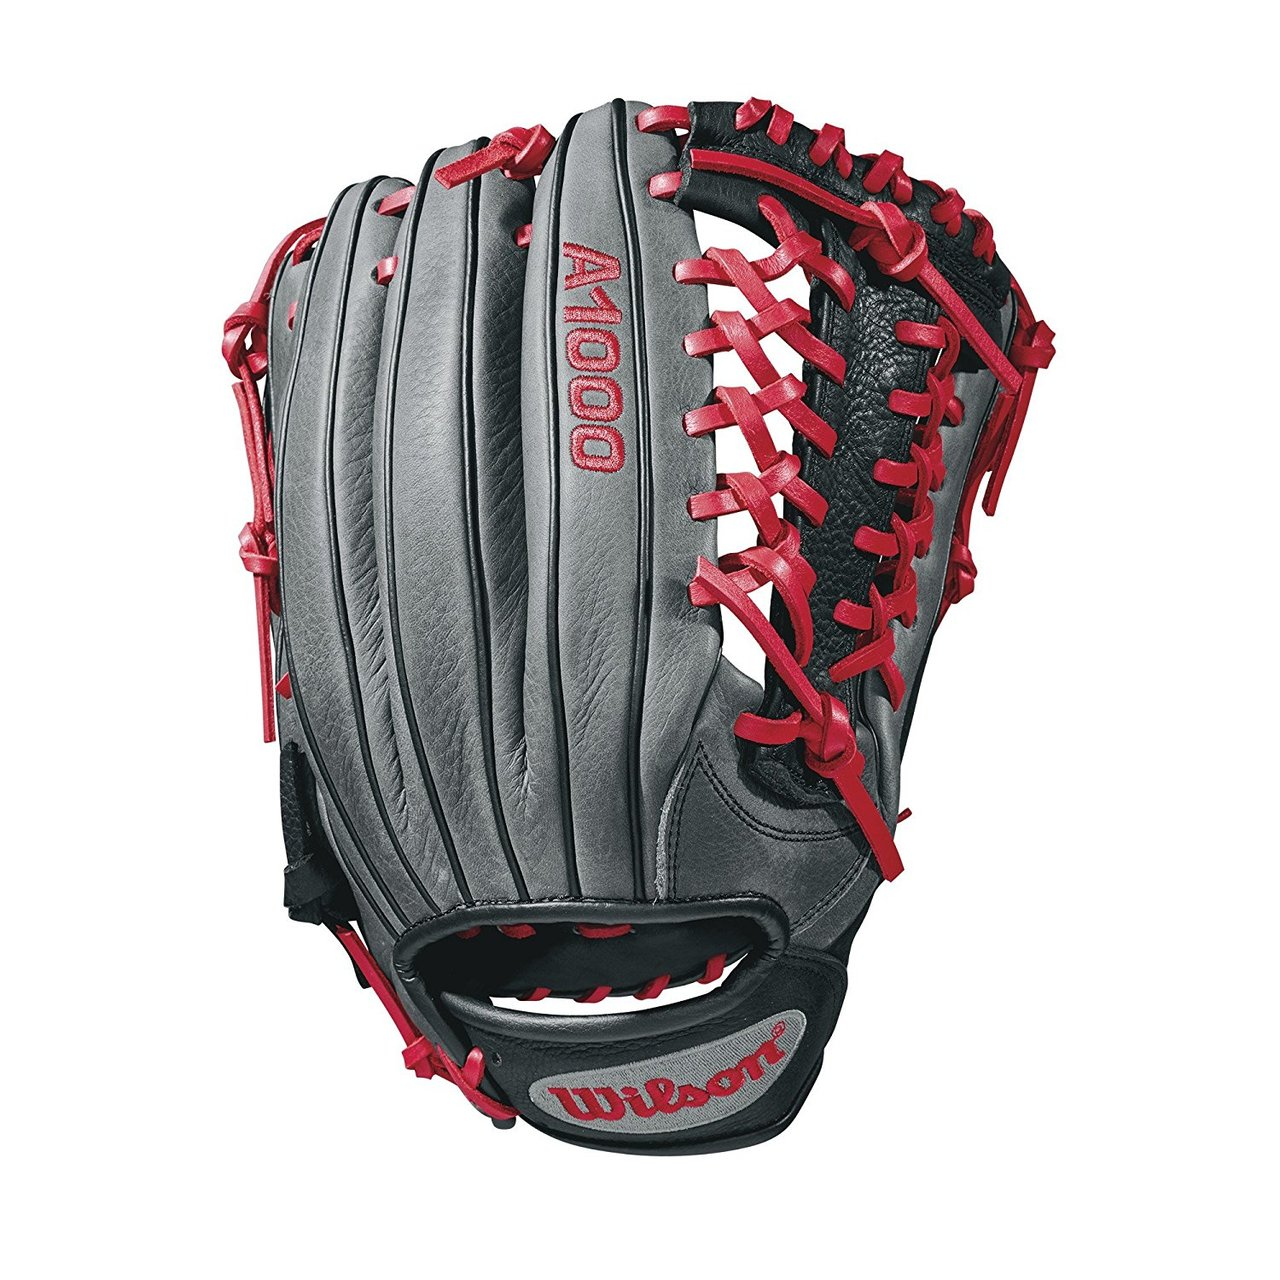 wilson-2018-a1000-kp92-baseball-glove-12-5-right-hand-throw WTA10RB18KP92-RightHandThrow Wilson 887768614843 The 12.5 Wilson A1000 glove is made with the same innovation